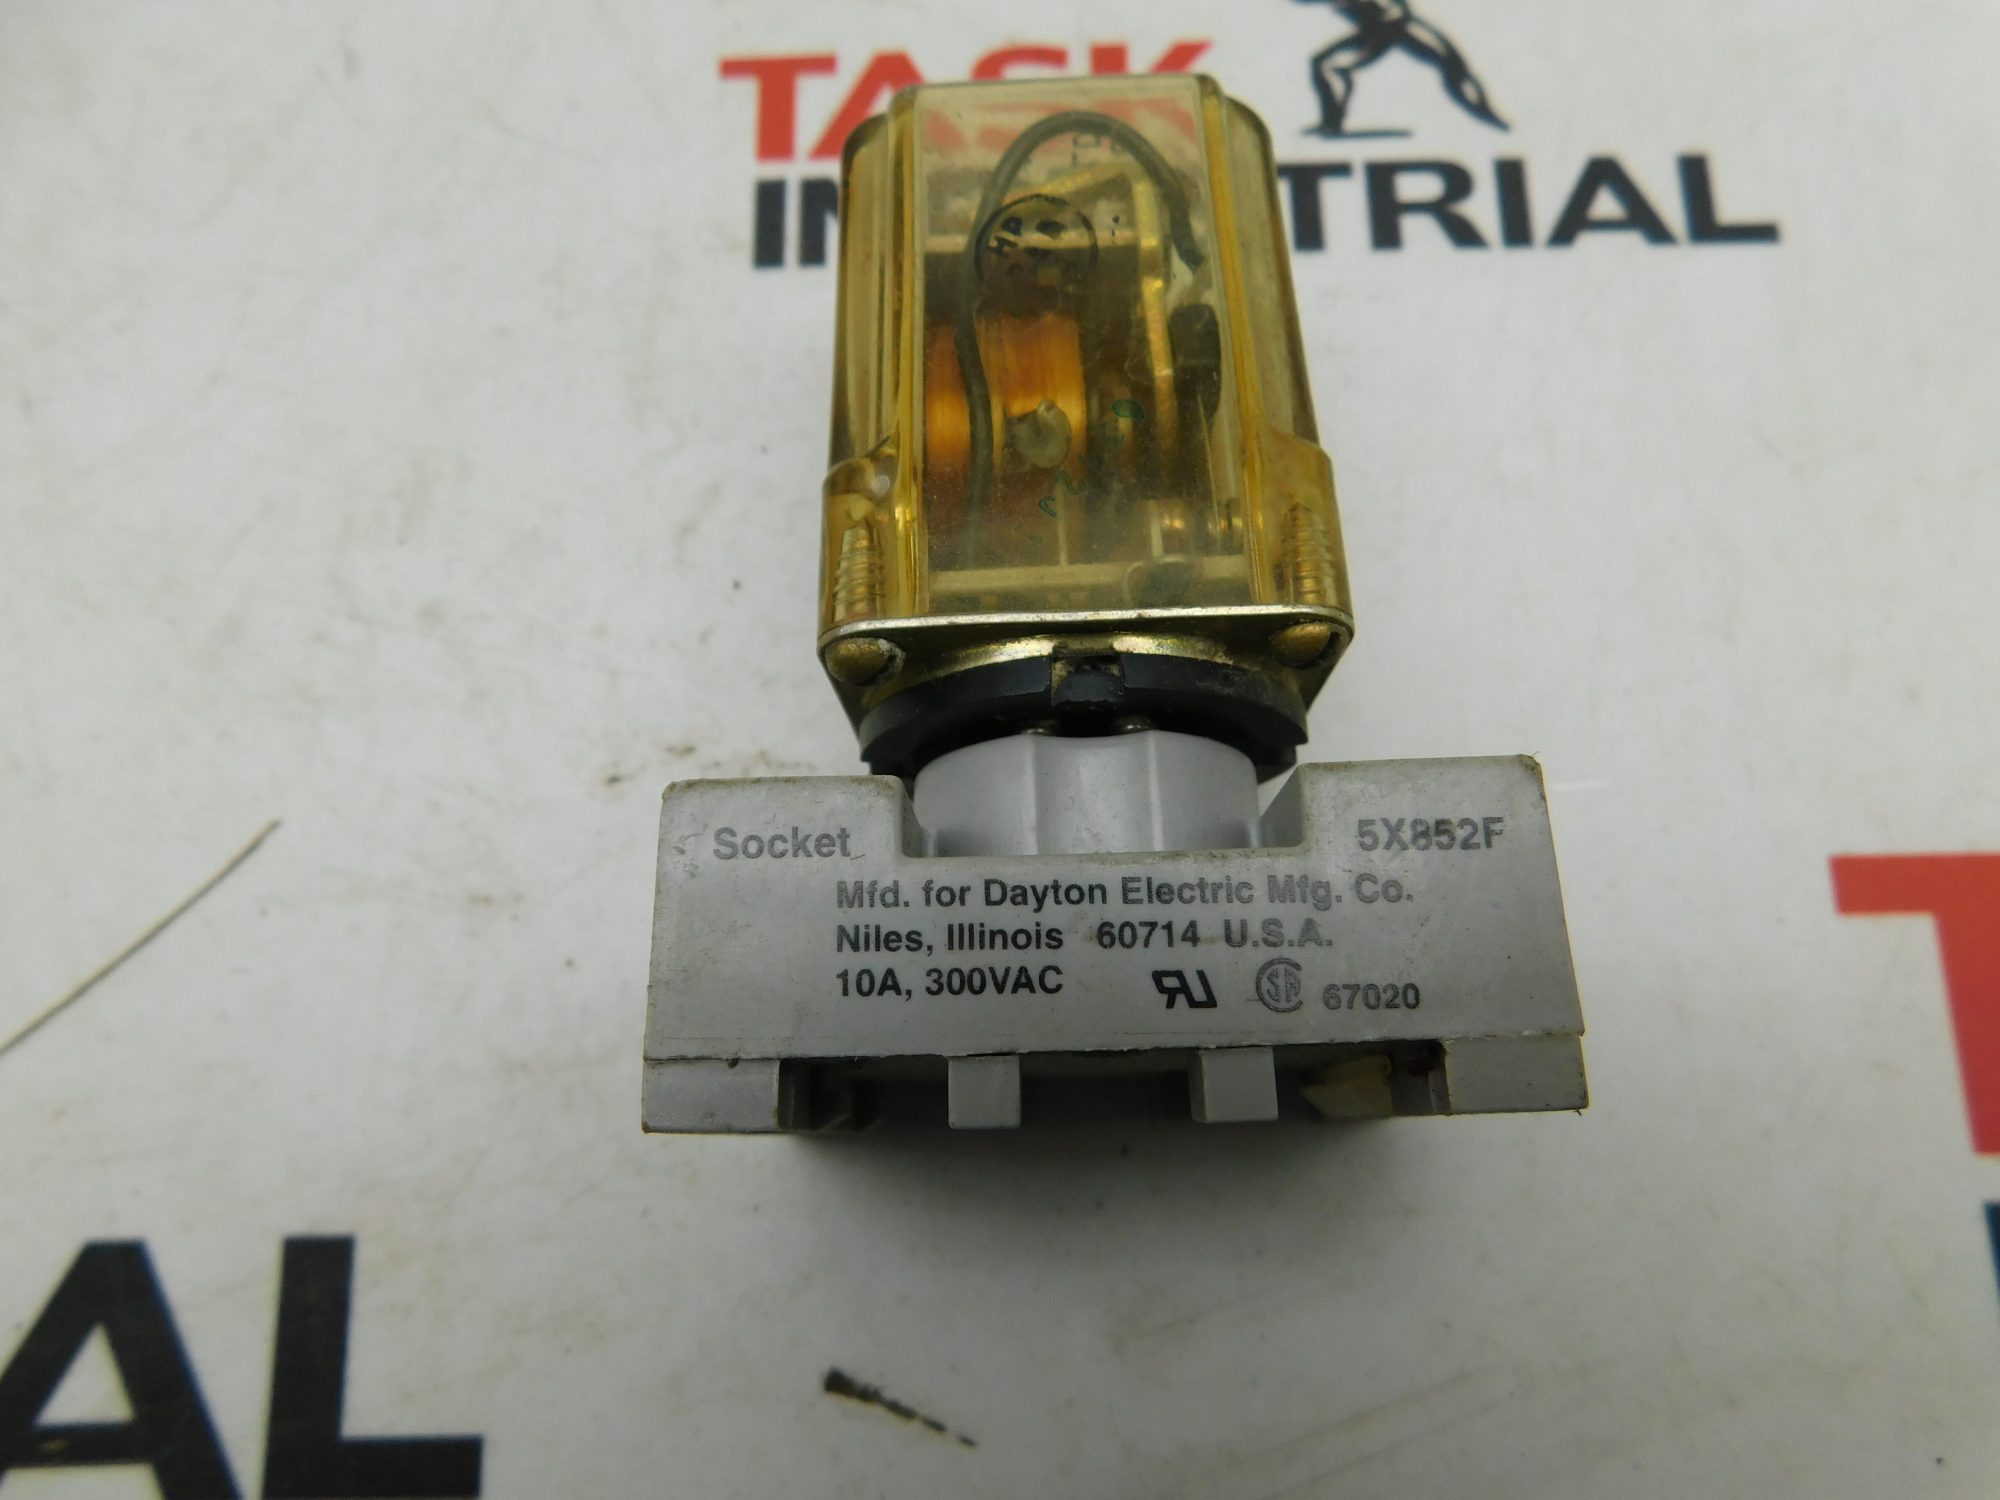 Potter & Brumfield KRP11AG 115V 50-60C Relay With 5X852F Base